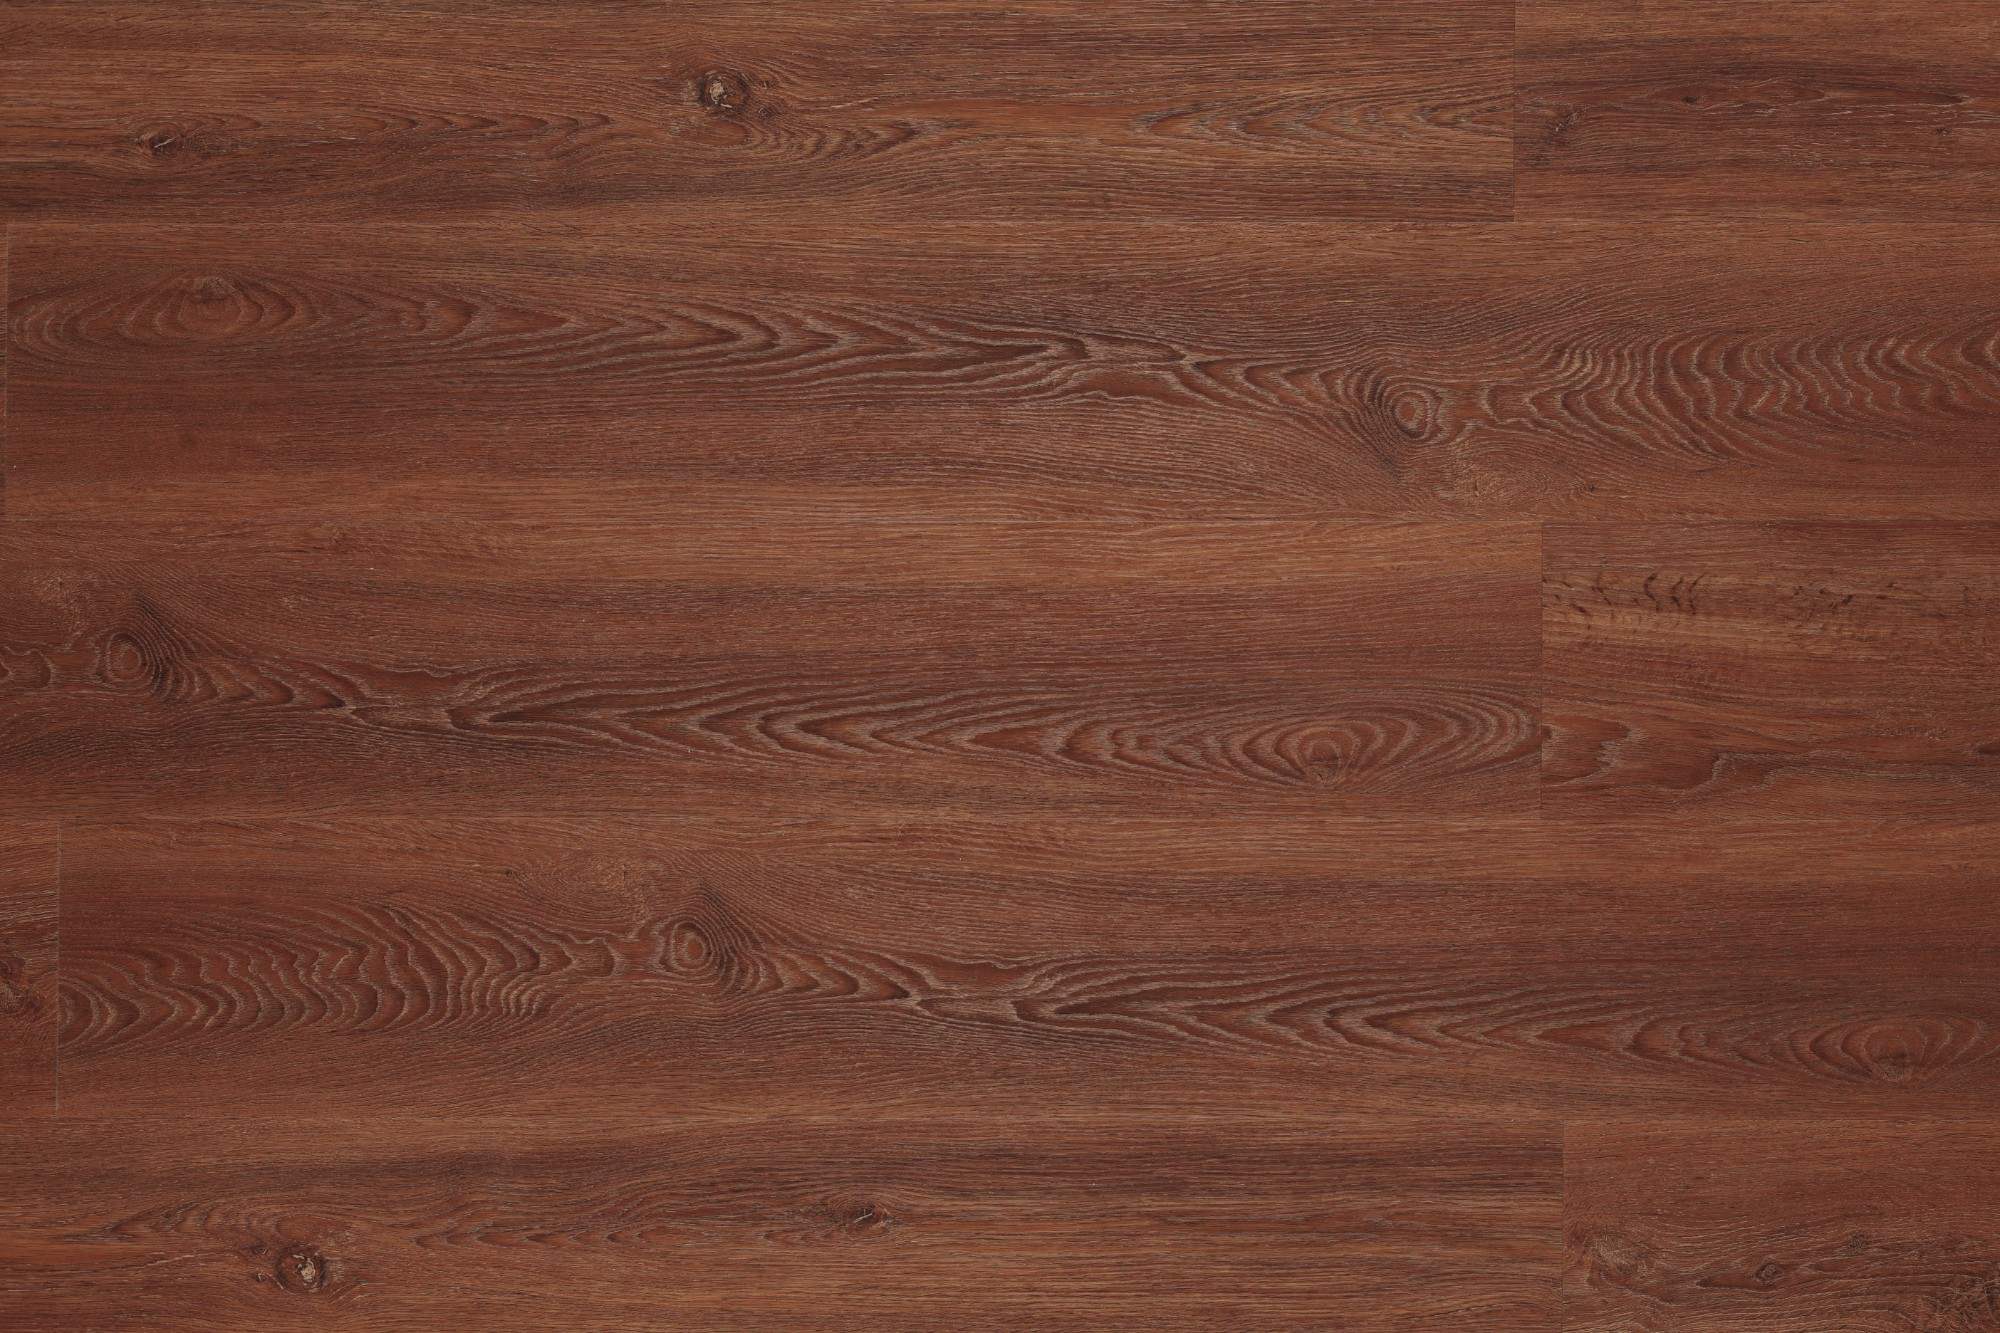 Виниловый пол Dumafloor Aquafloor GLUE Real Wood AF6051